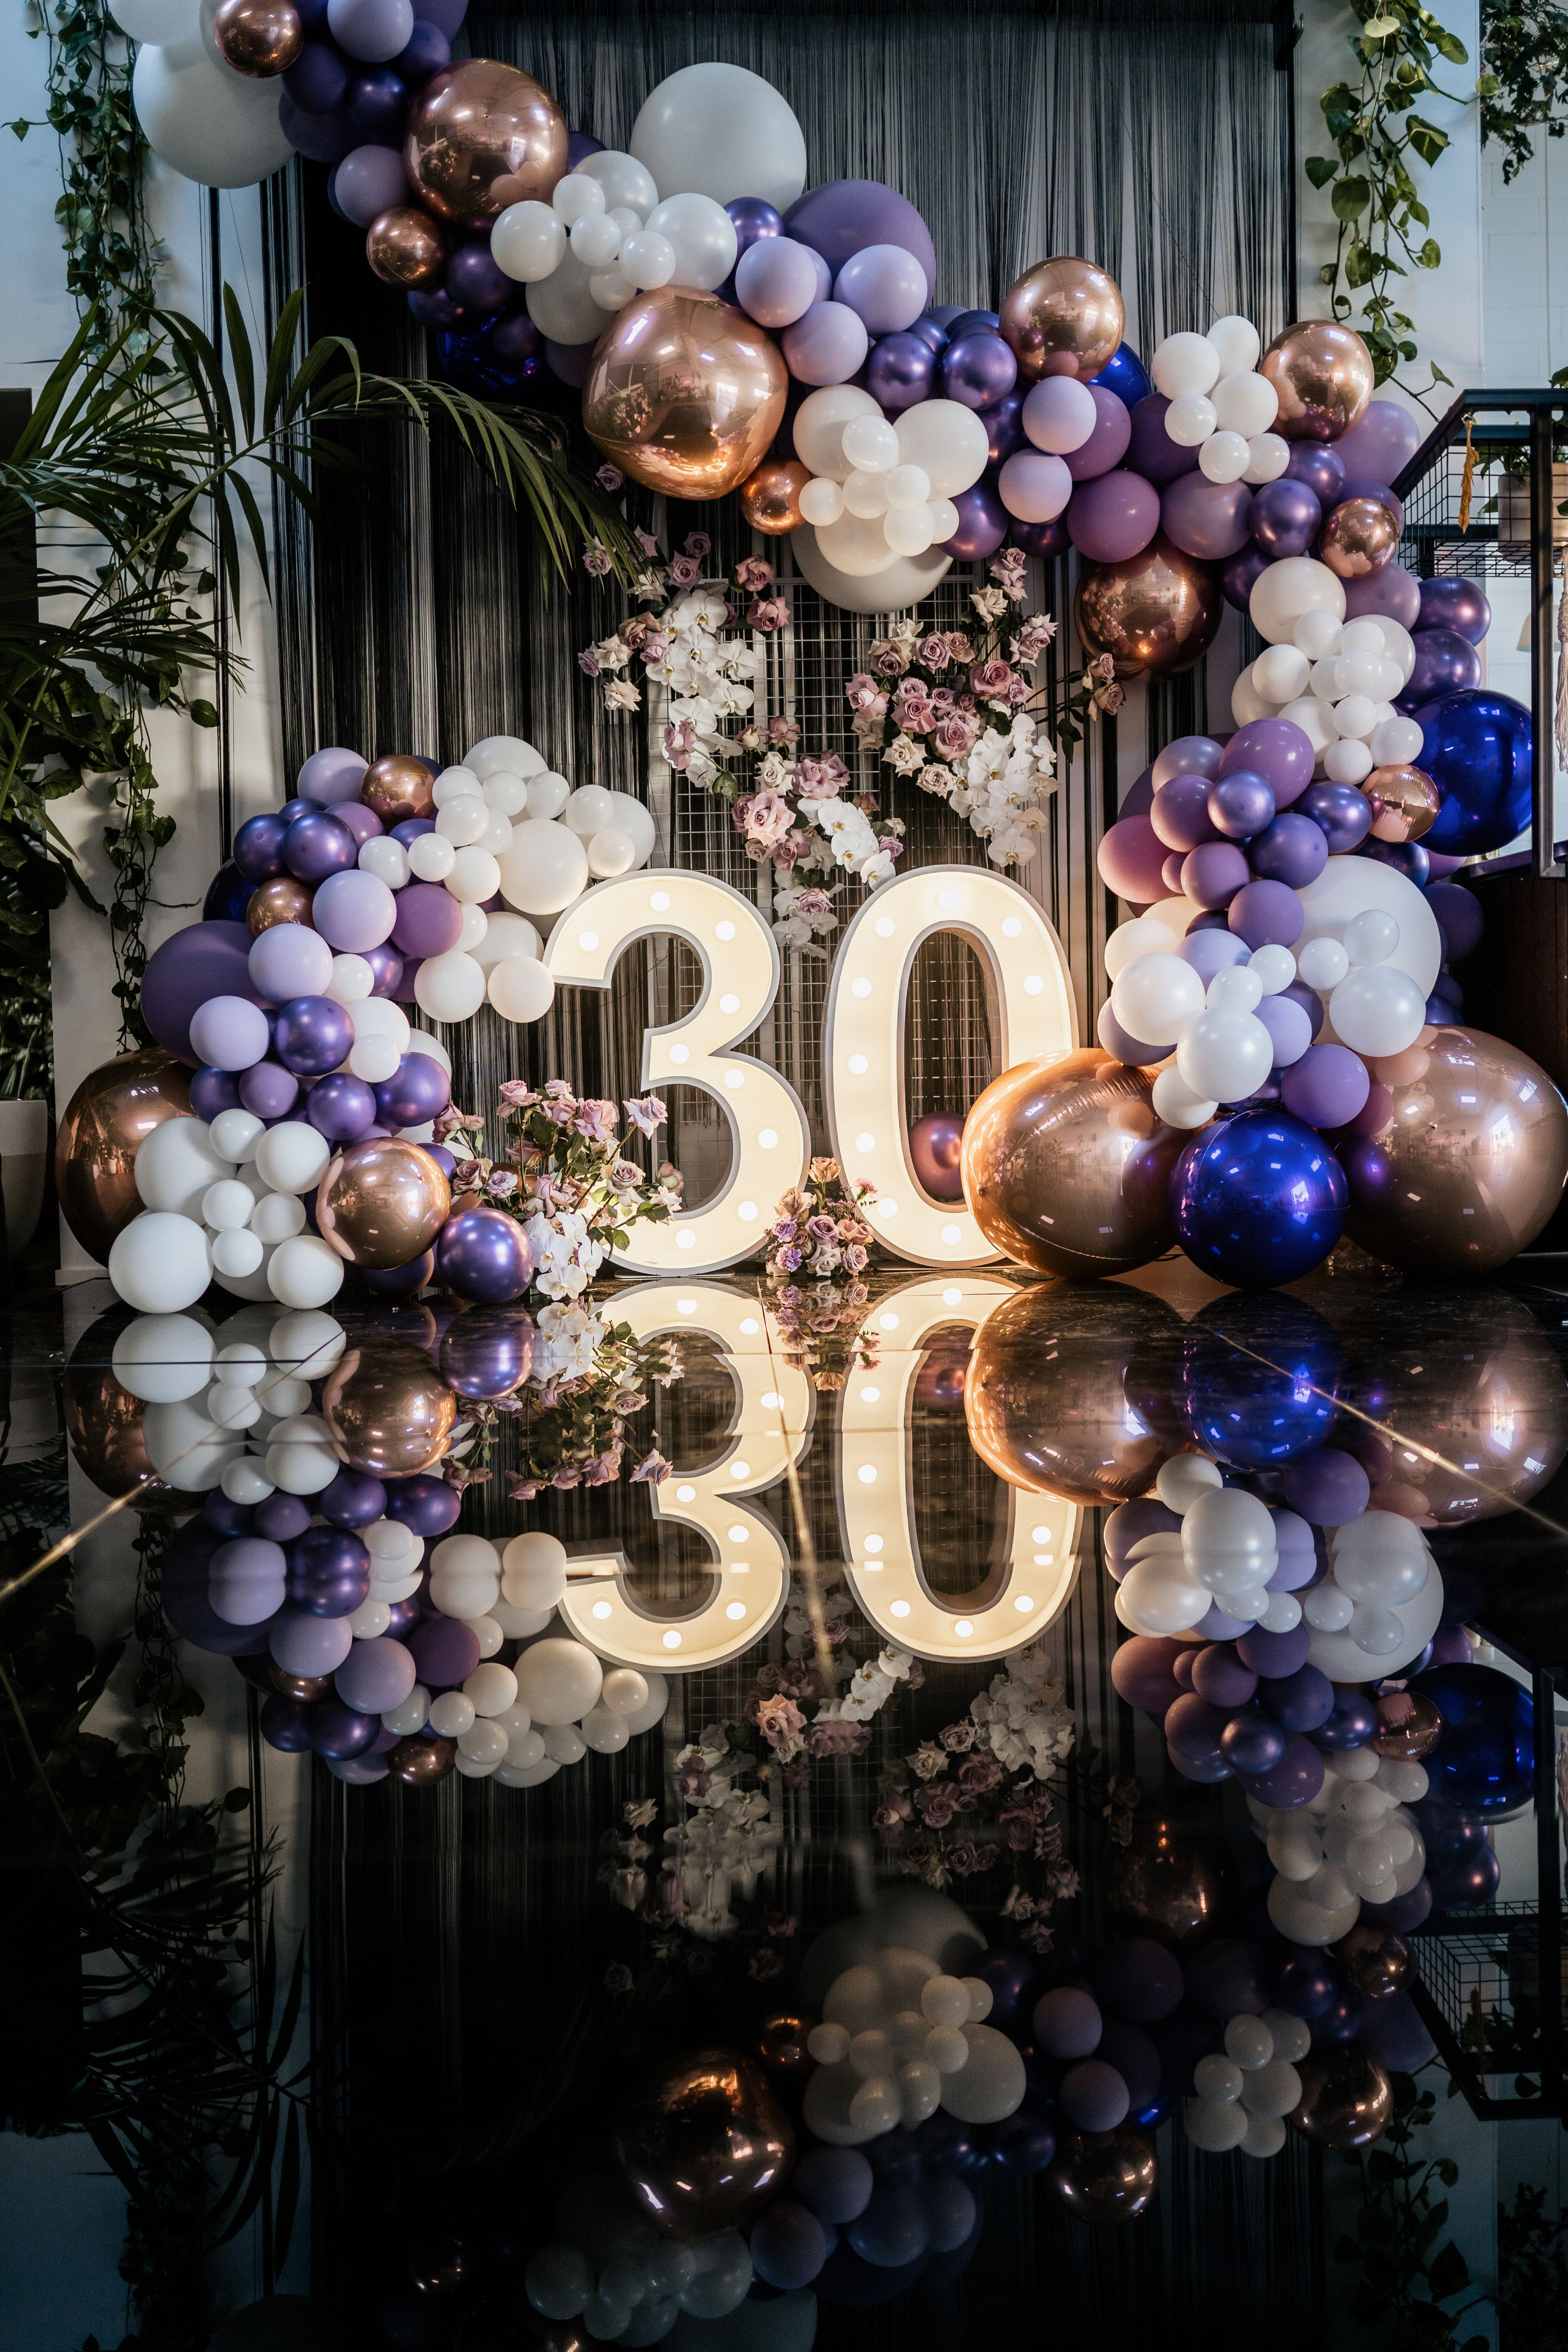 Rose gold purple and white balloon garland by stylish soirees perth th birthday party ideas also best claudette th images in rh pinterest